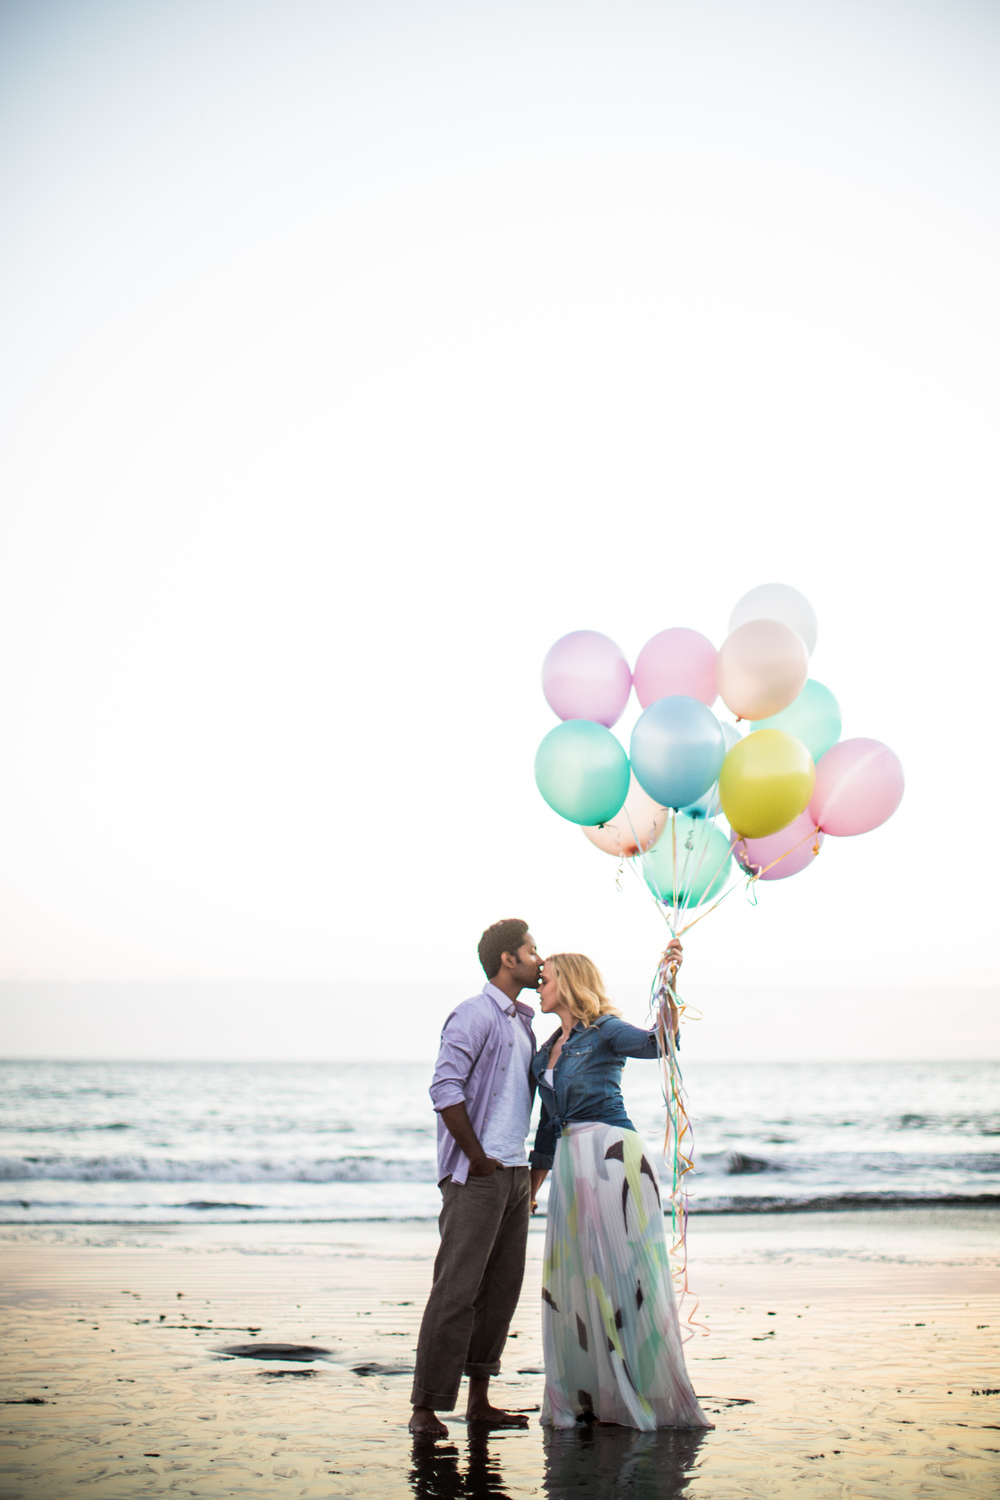 Engagement Session with Balloons | Blueberry Photography